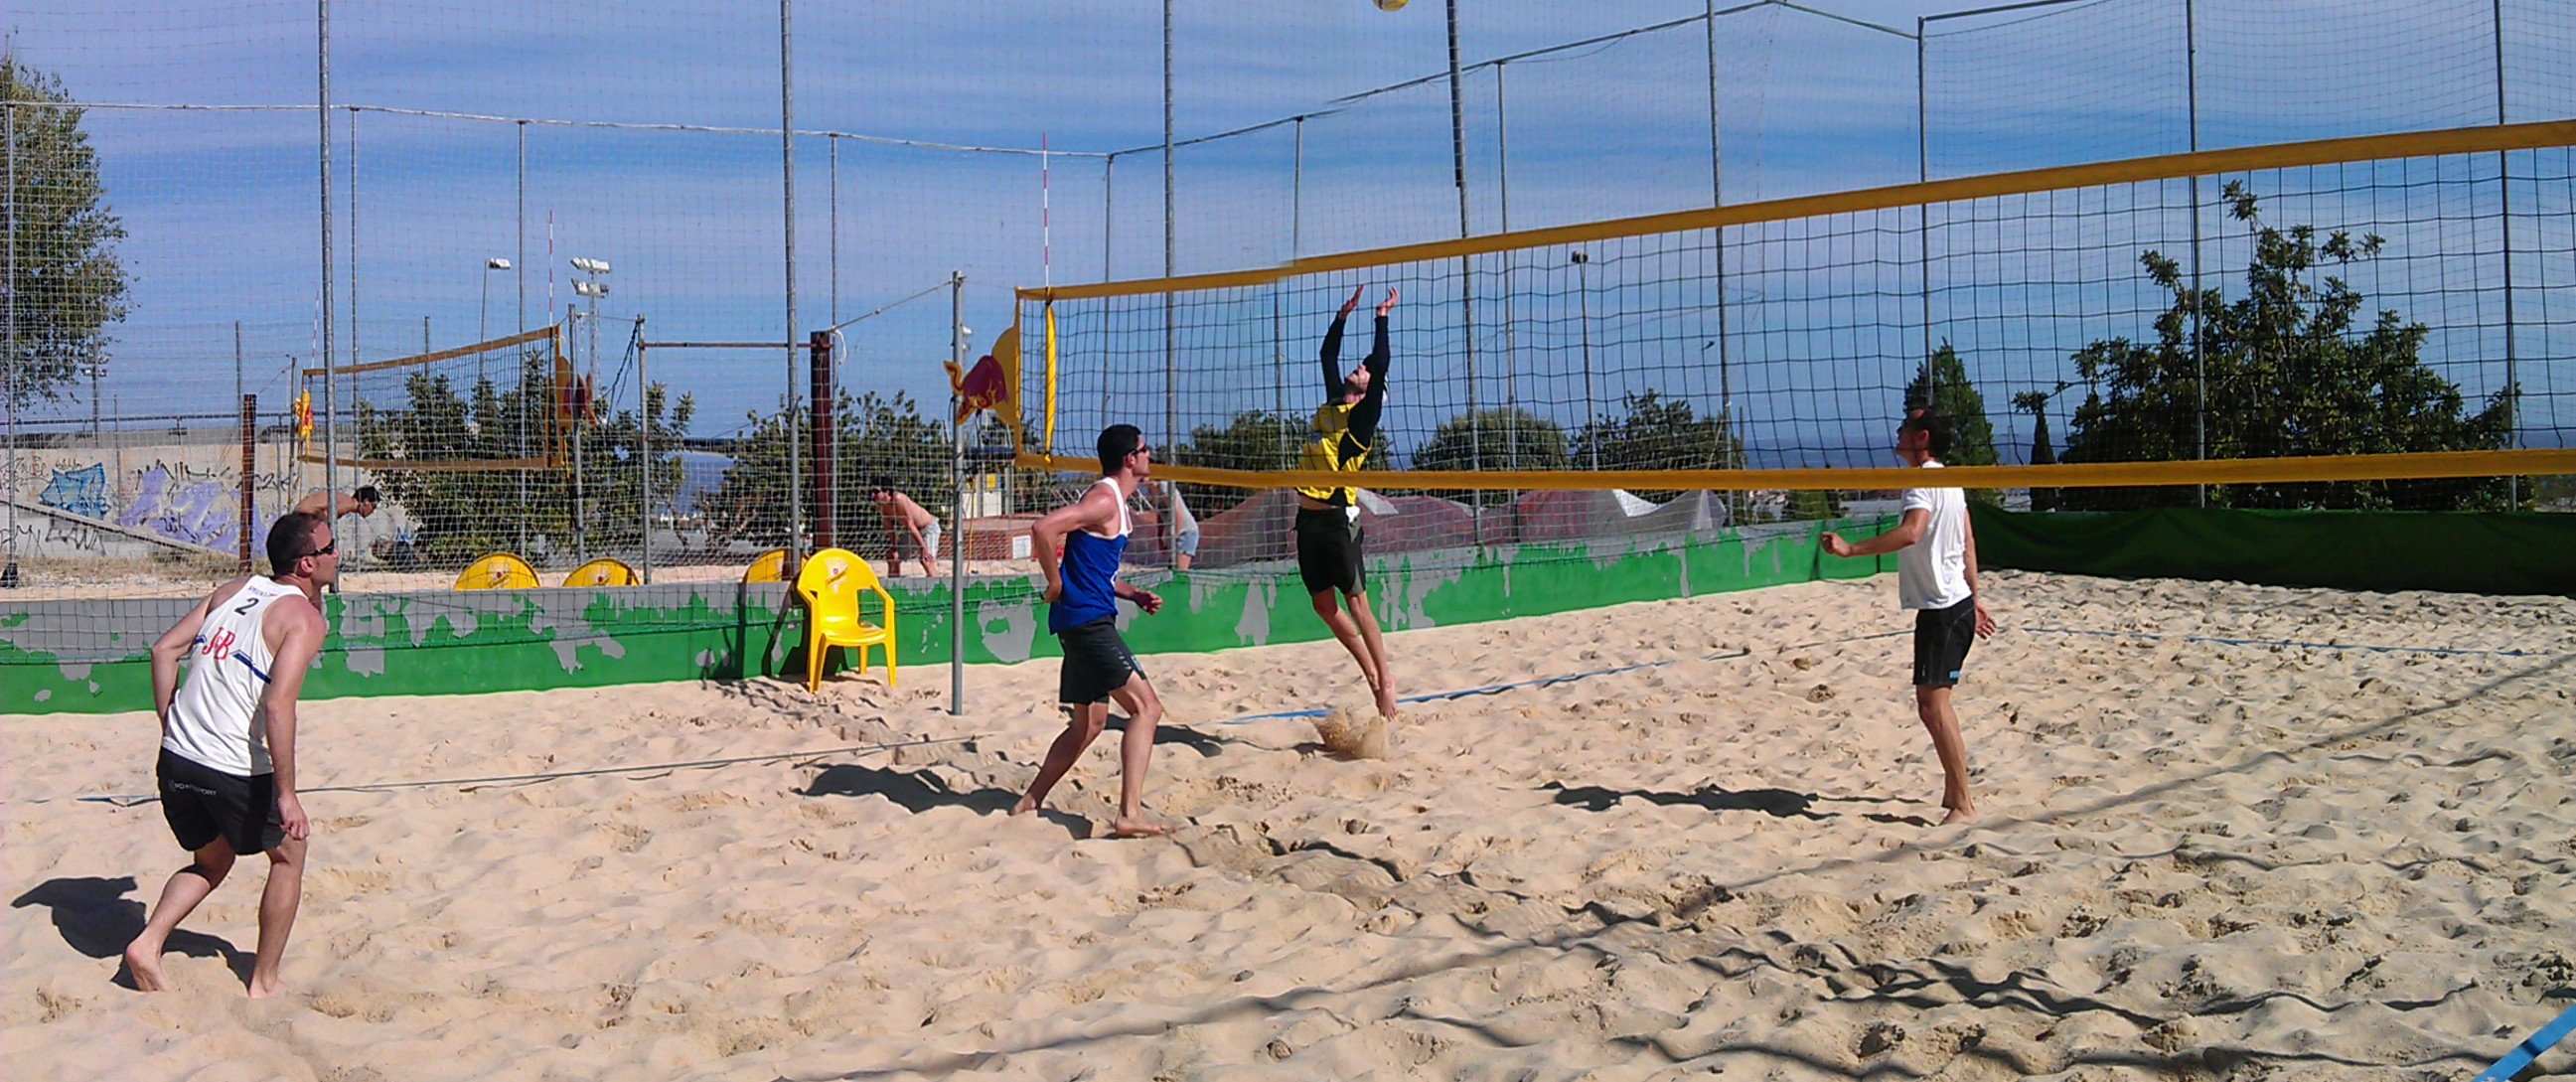 Partido voley playa